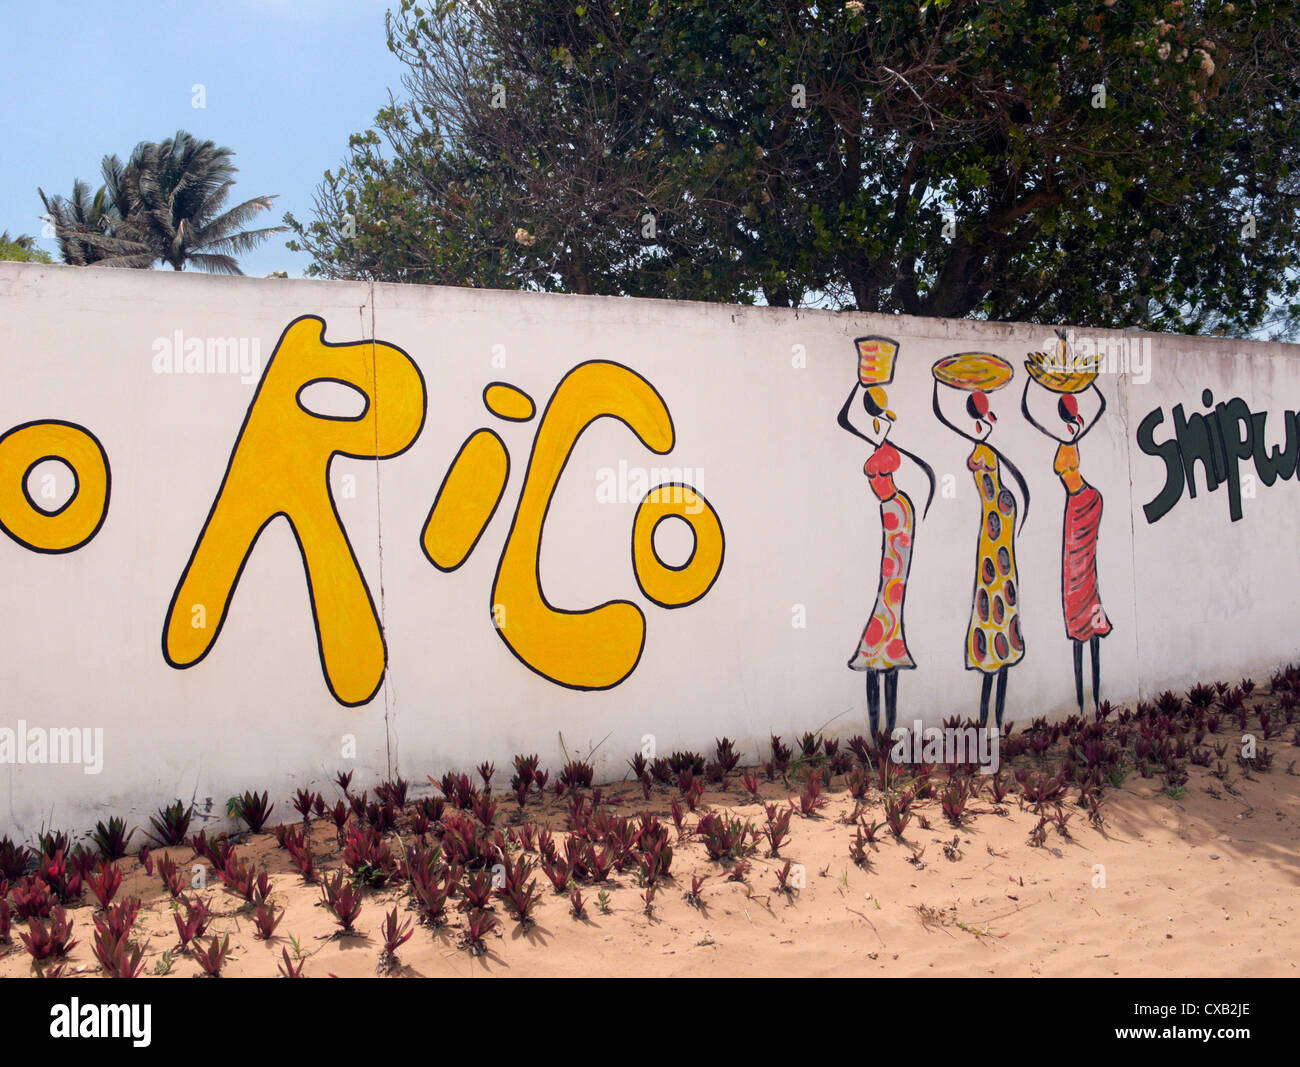 Mural on wall at Ponta do Ouro, southern Mozambique. - Stock Image